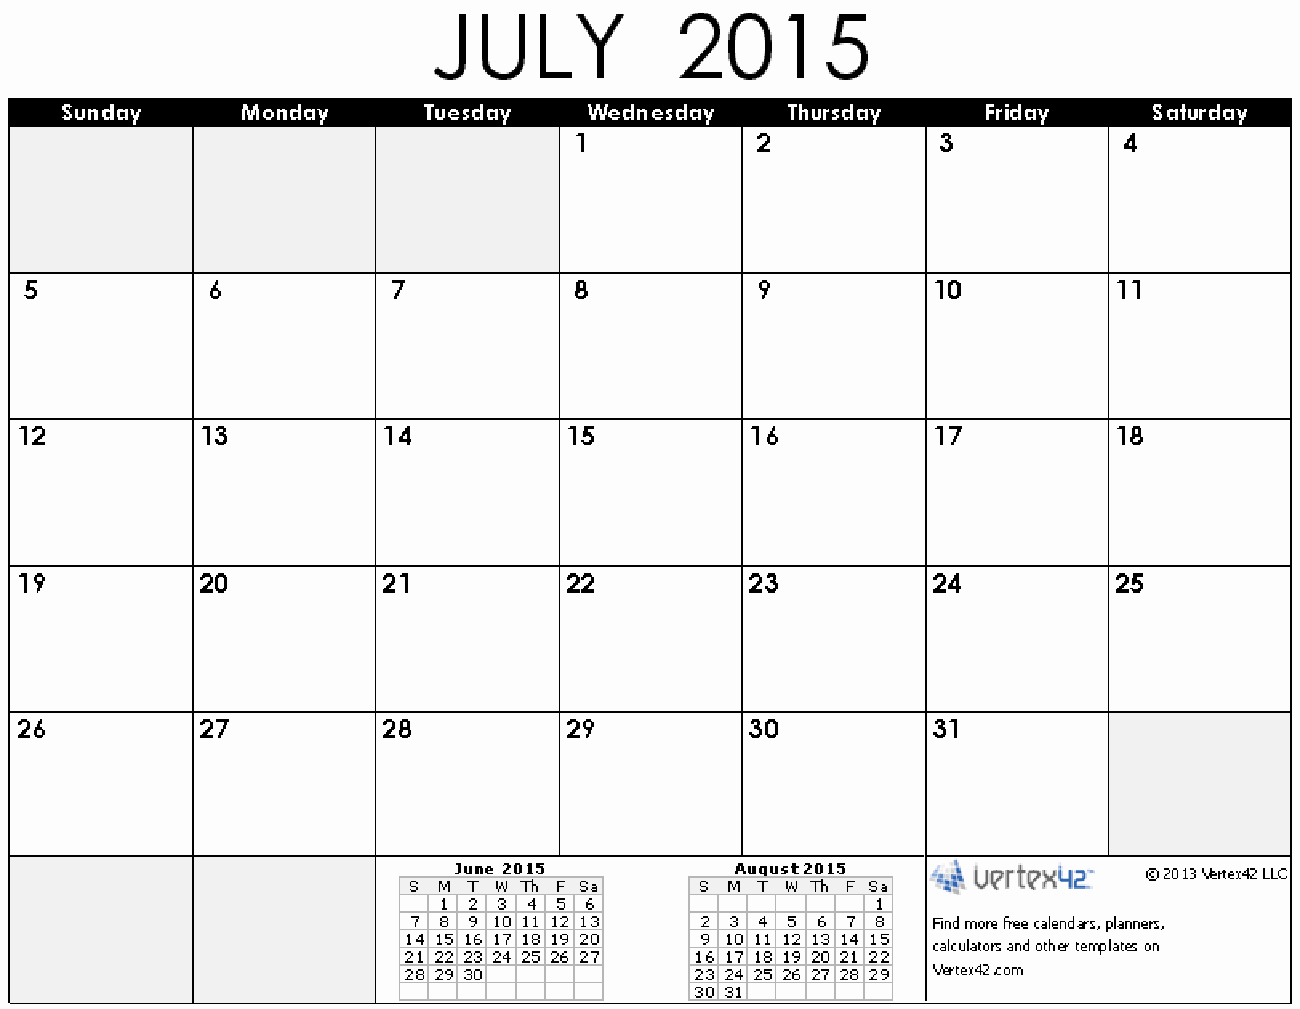 Quarterly Calendar Template 2015 Luxury 8 Best Of July 2015 Printable Calendar by Month